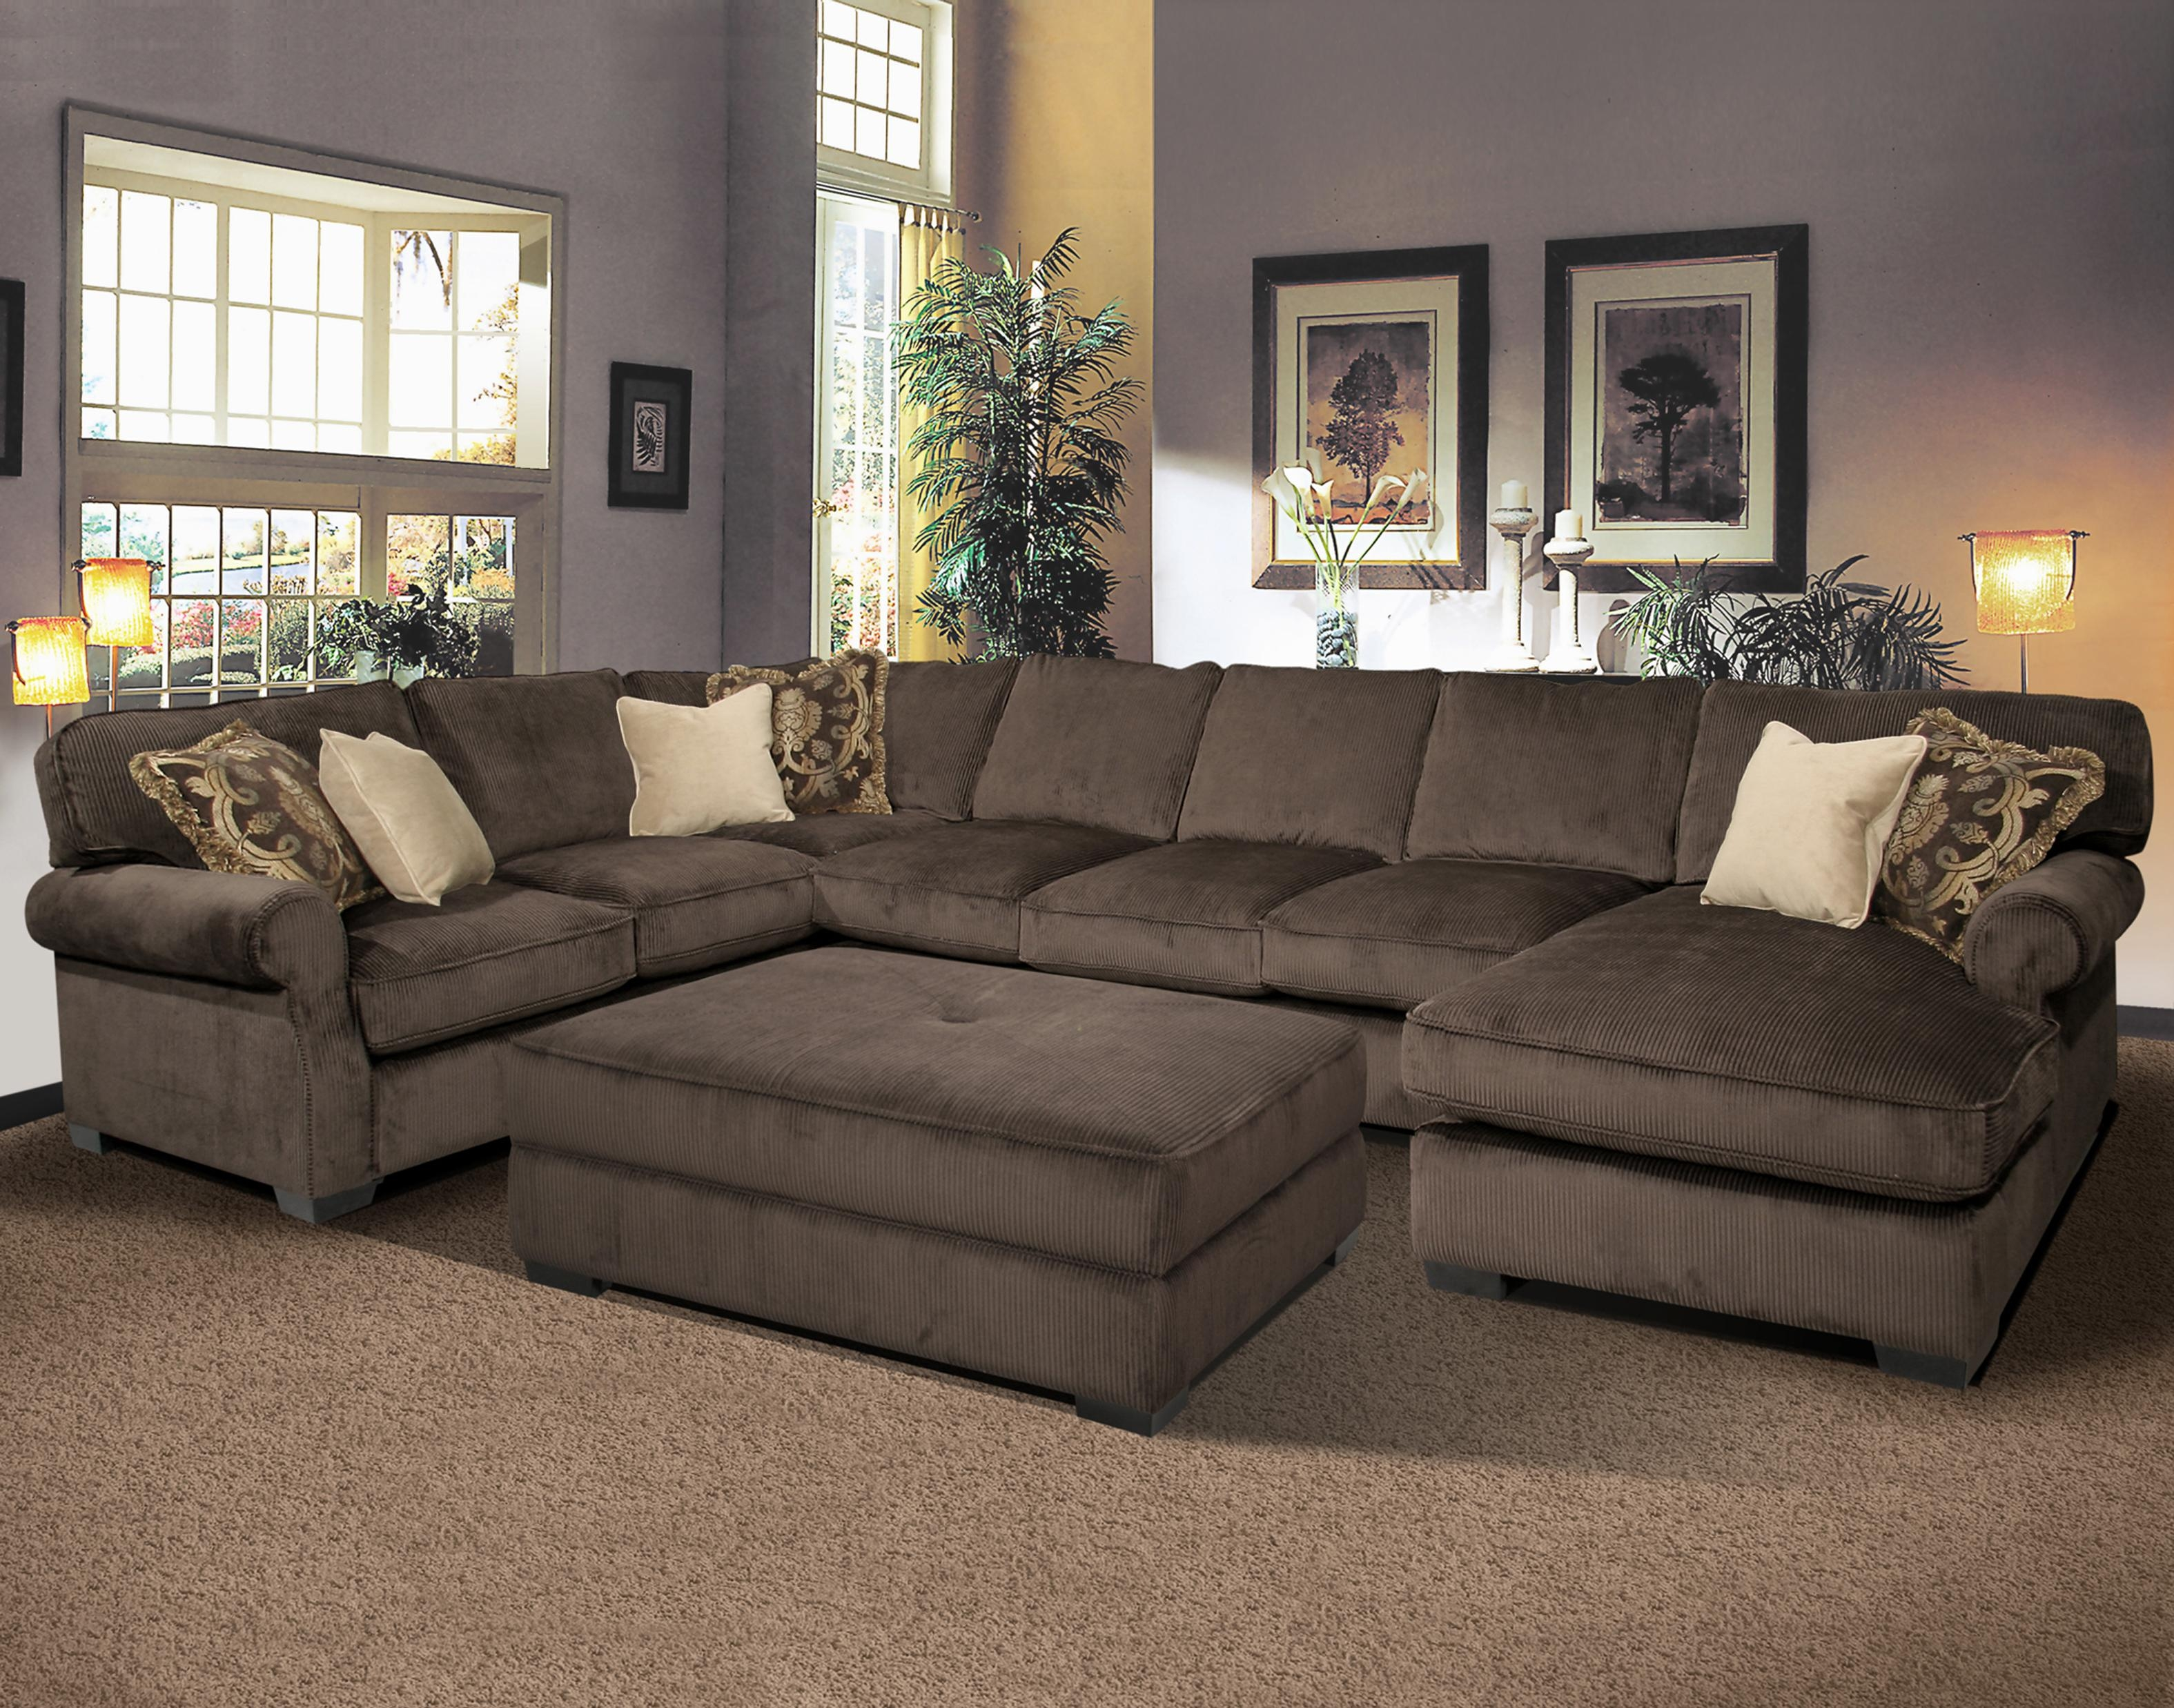 Big And Comfy Grand Island Large 7 Seat Sectional Sofa With Right Throughout Extra Large Sectional Sofas (View 8 of 15)